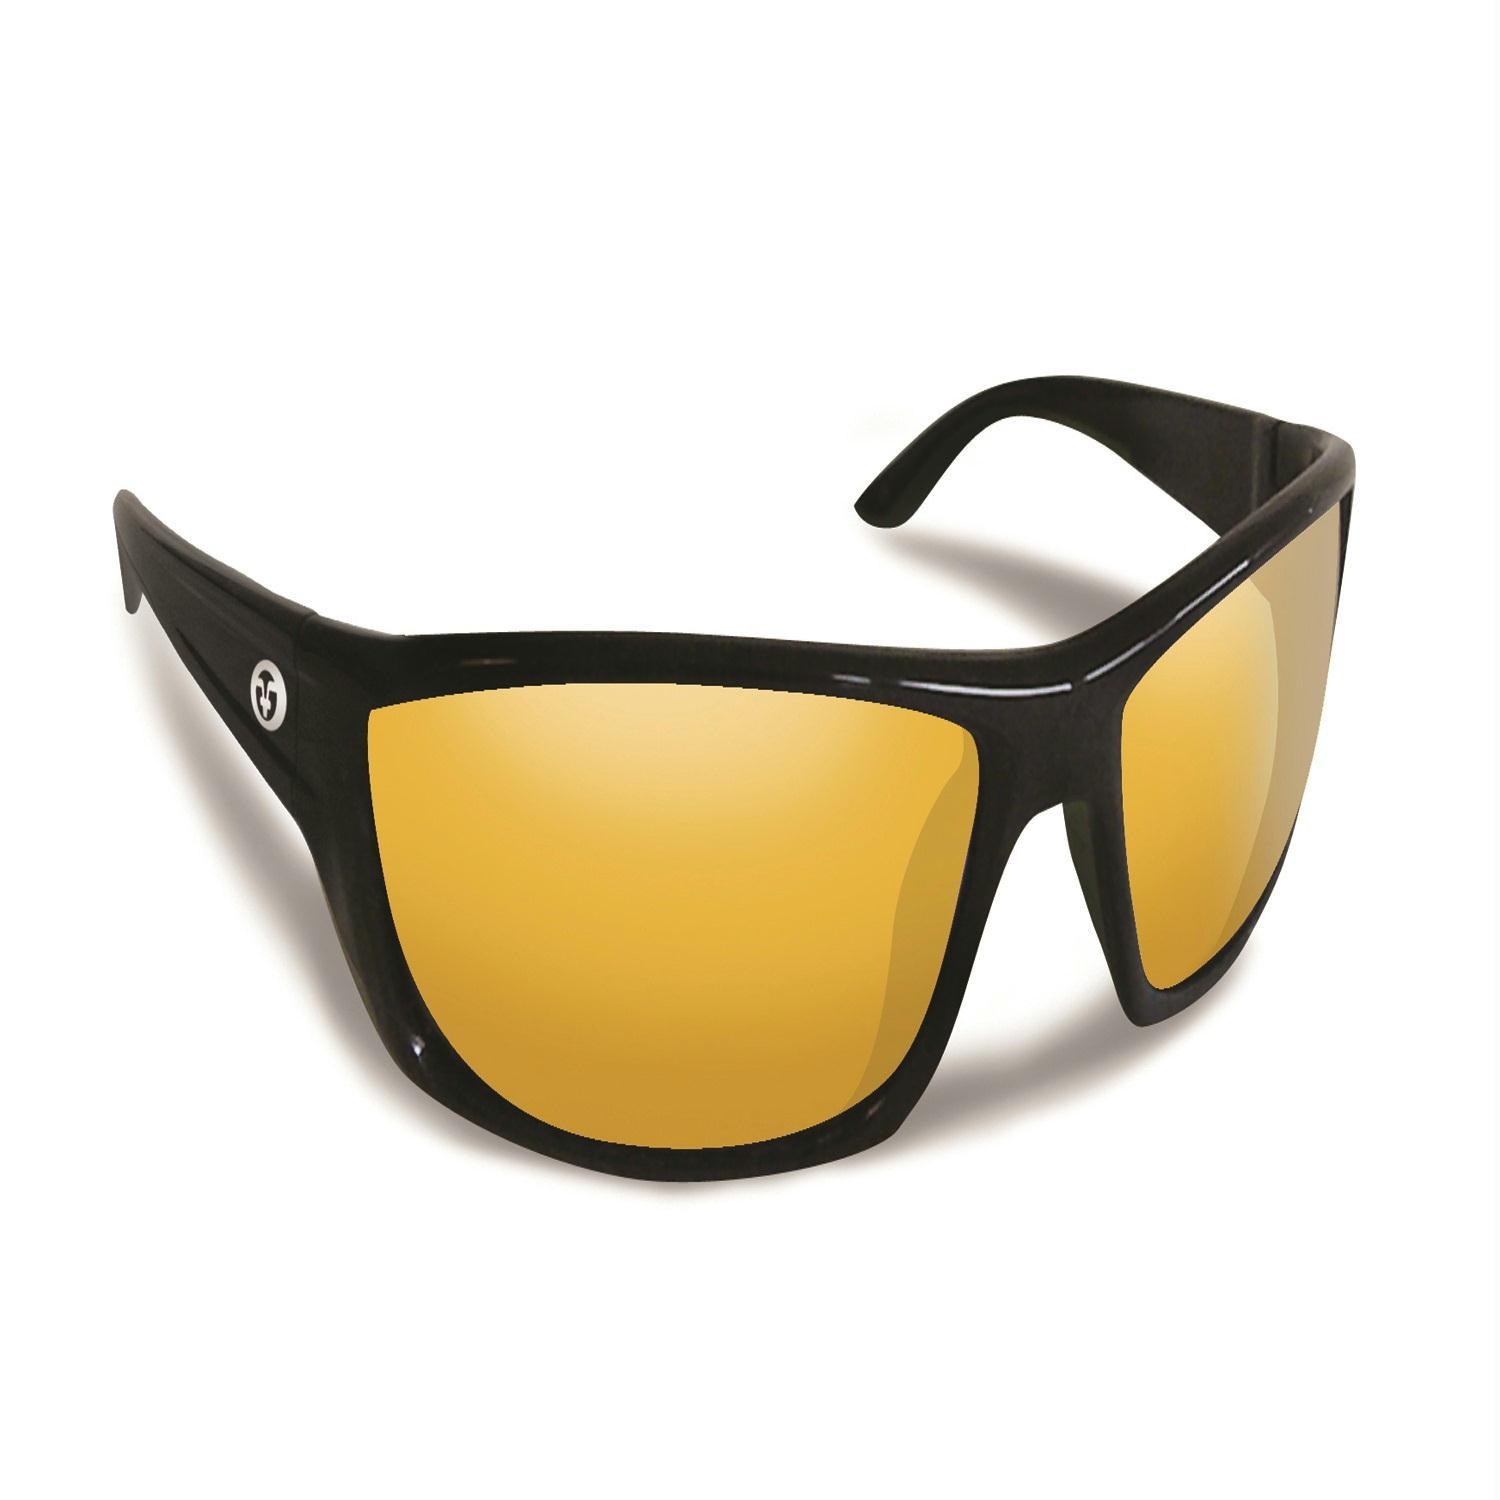 5ccd22280c9 Flying Fisherman Buchanan Black w-Yellow Amber Sunglasses